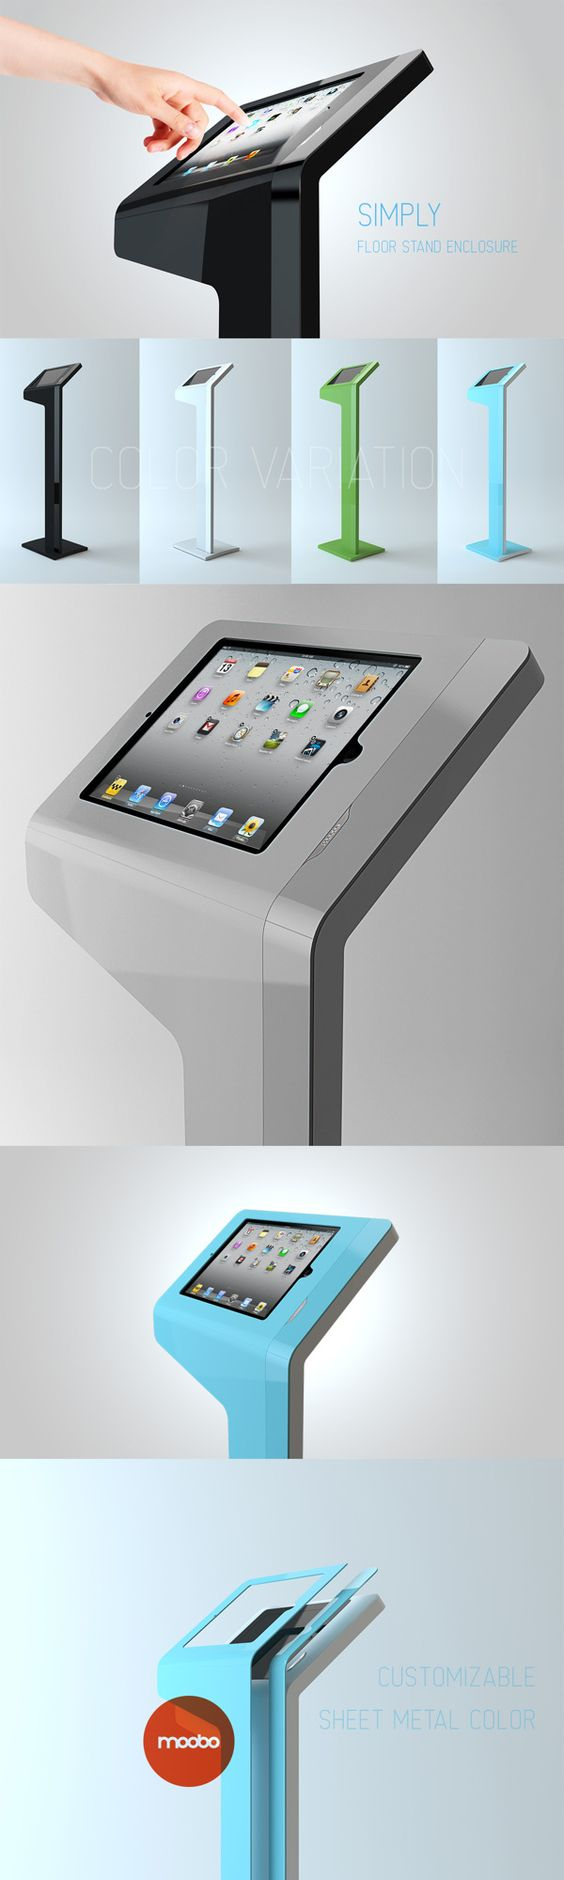 Ipad Exhibition Stand Hire : Moveon ipad enclosure for moobo product pinterest